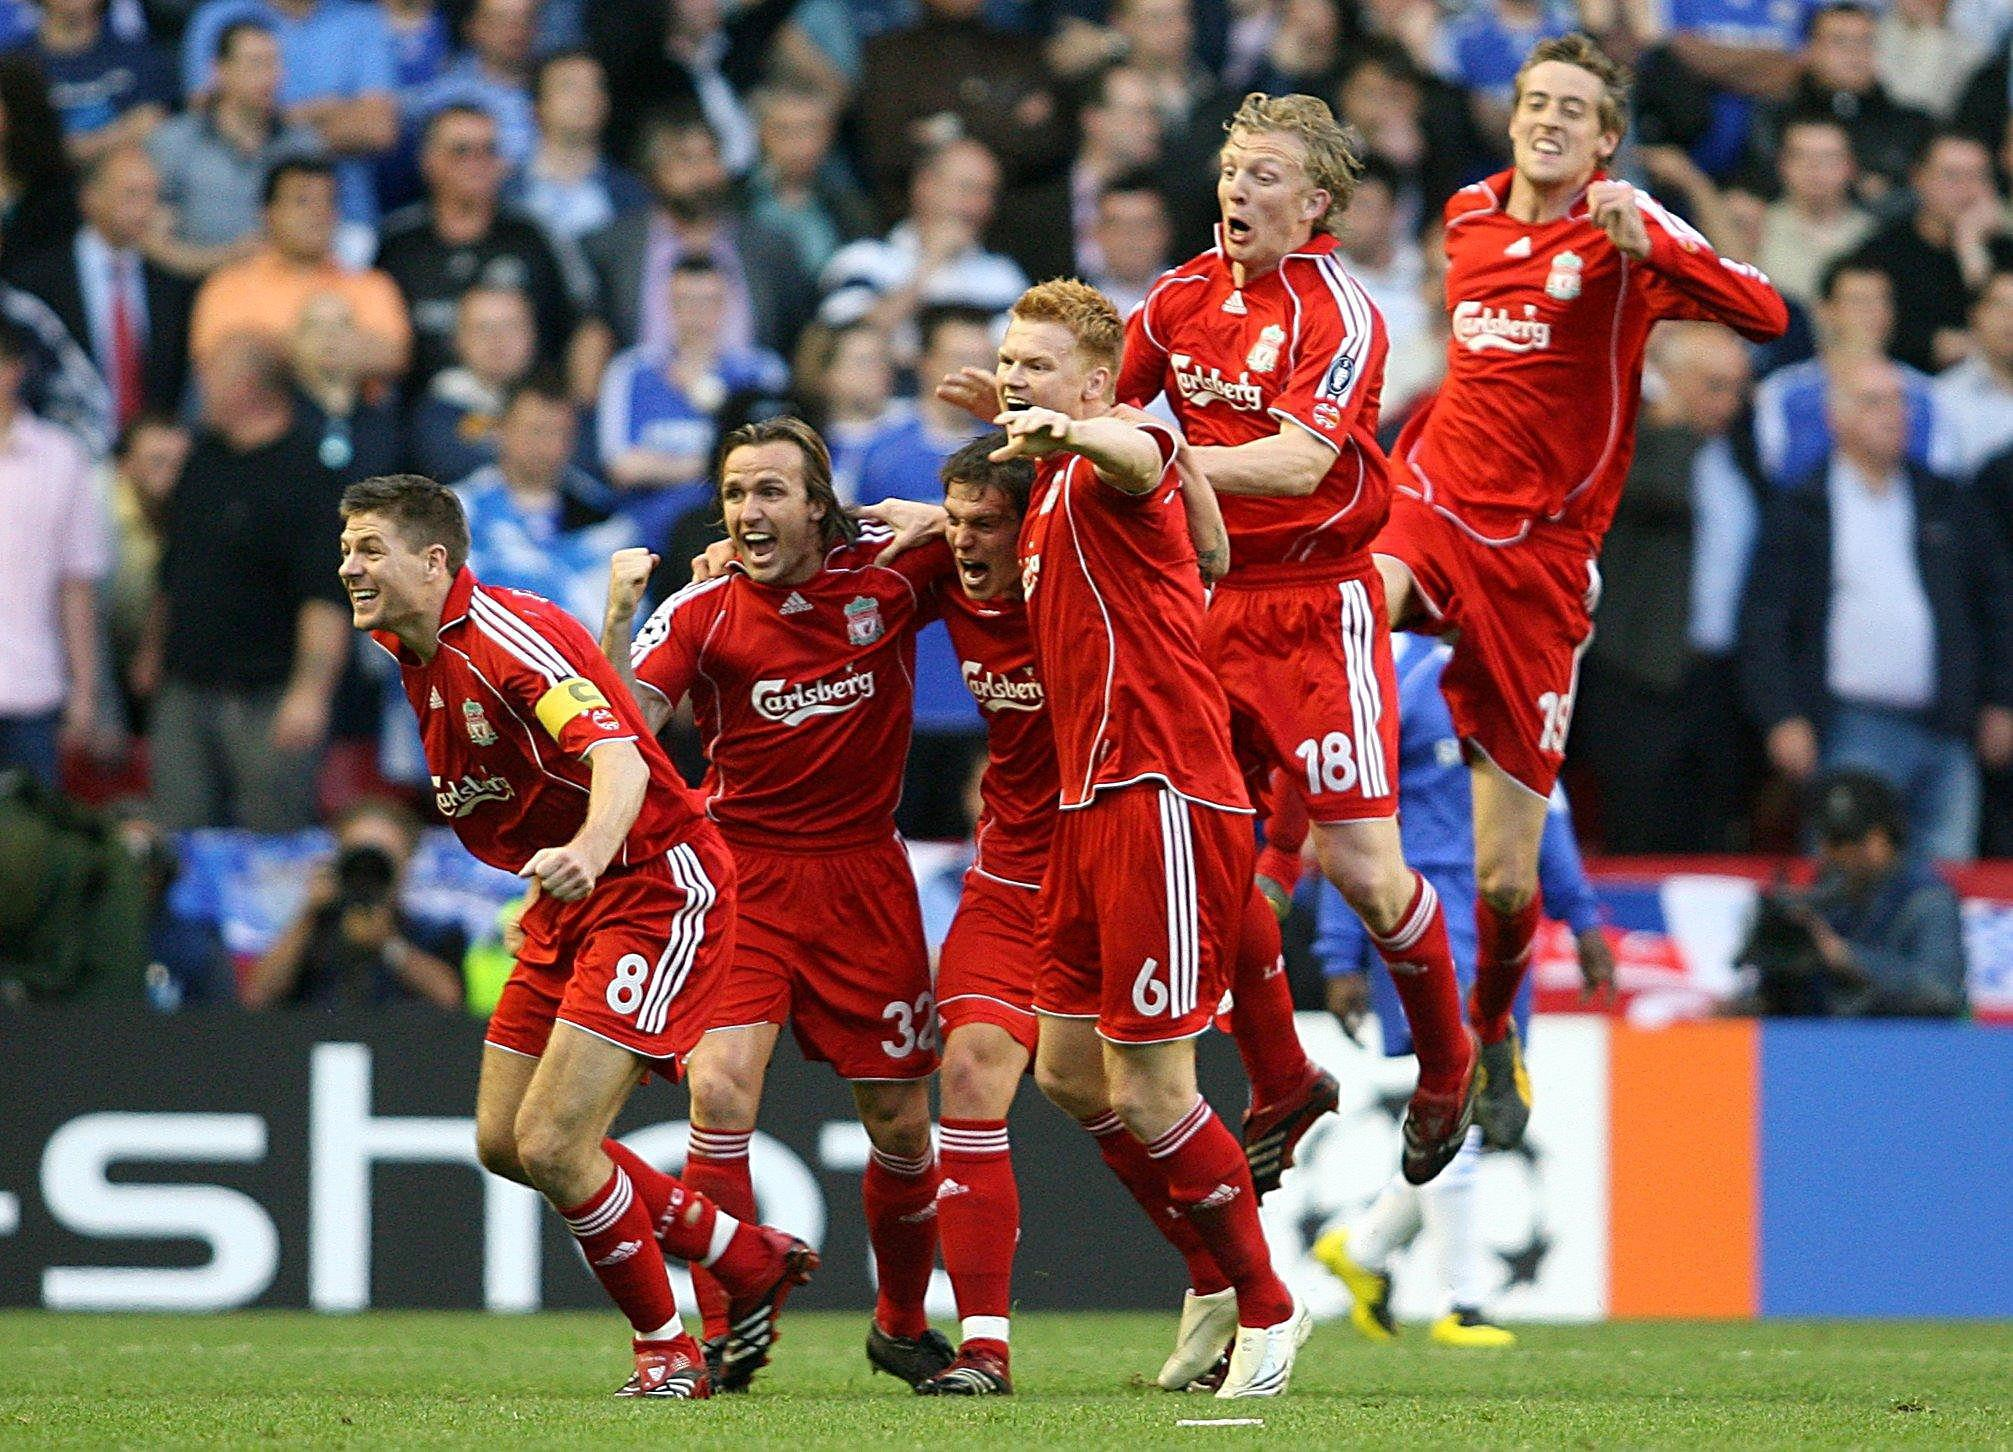 Liverpool beat Chelsea in the semi-finals in 2007